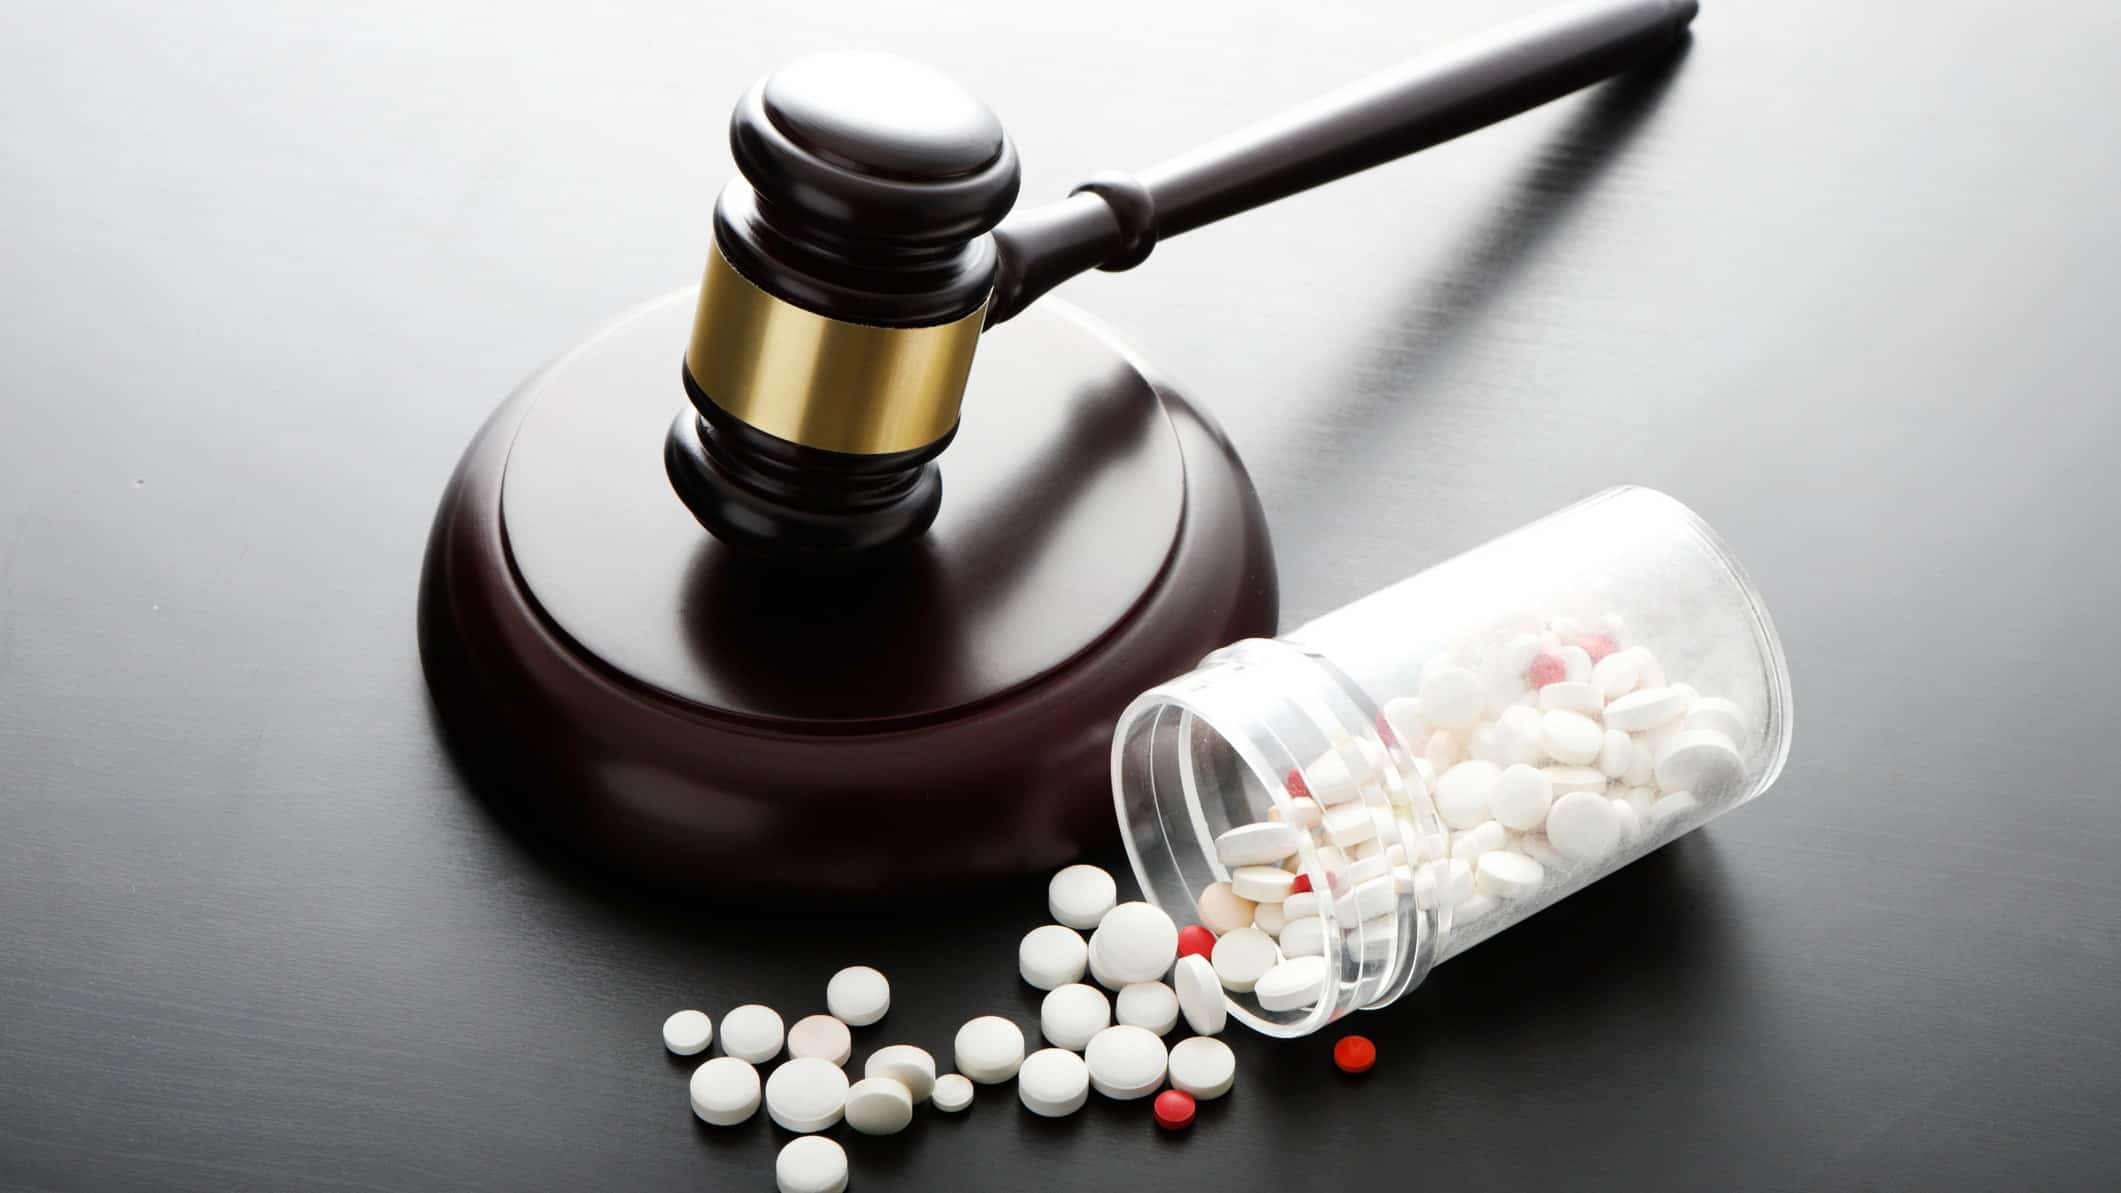 a legal gavel rests near a bottle of pharmaceutical pills with the contents spilling onto the desk.